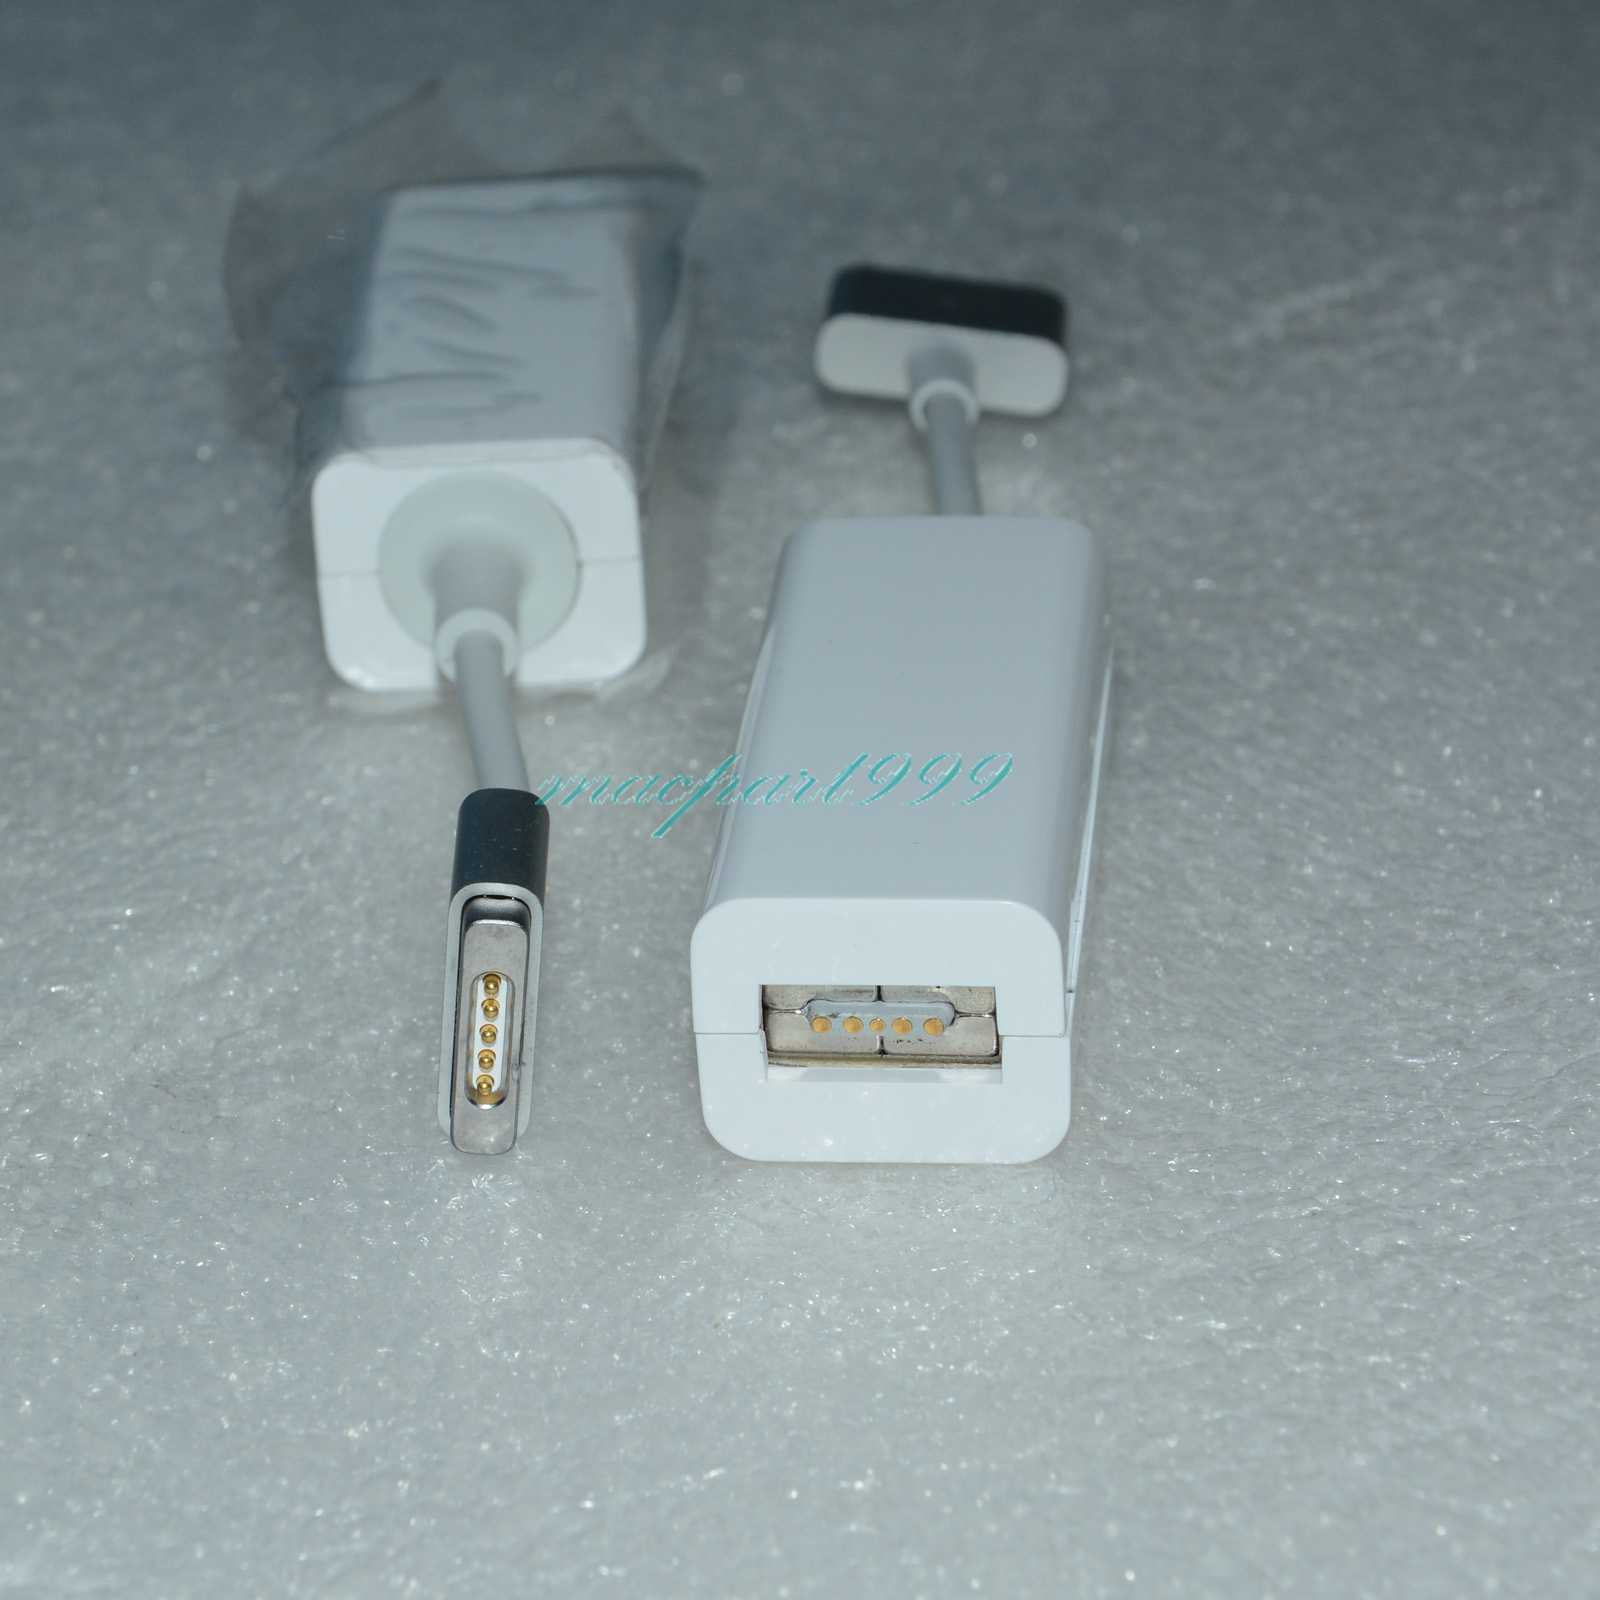 New Magsafe1 To Magsafe2 Converter For Apple Macbook 45w